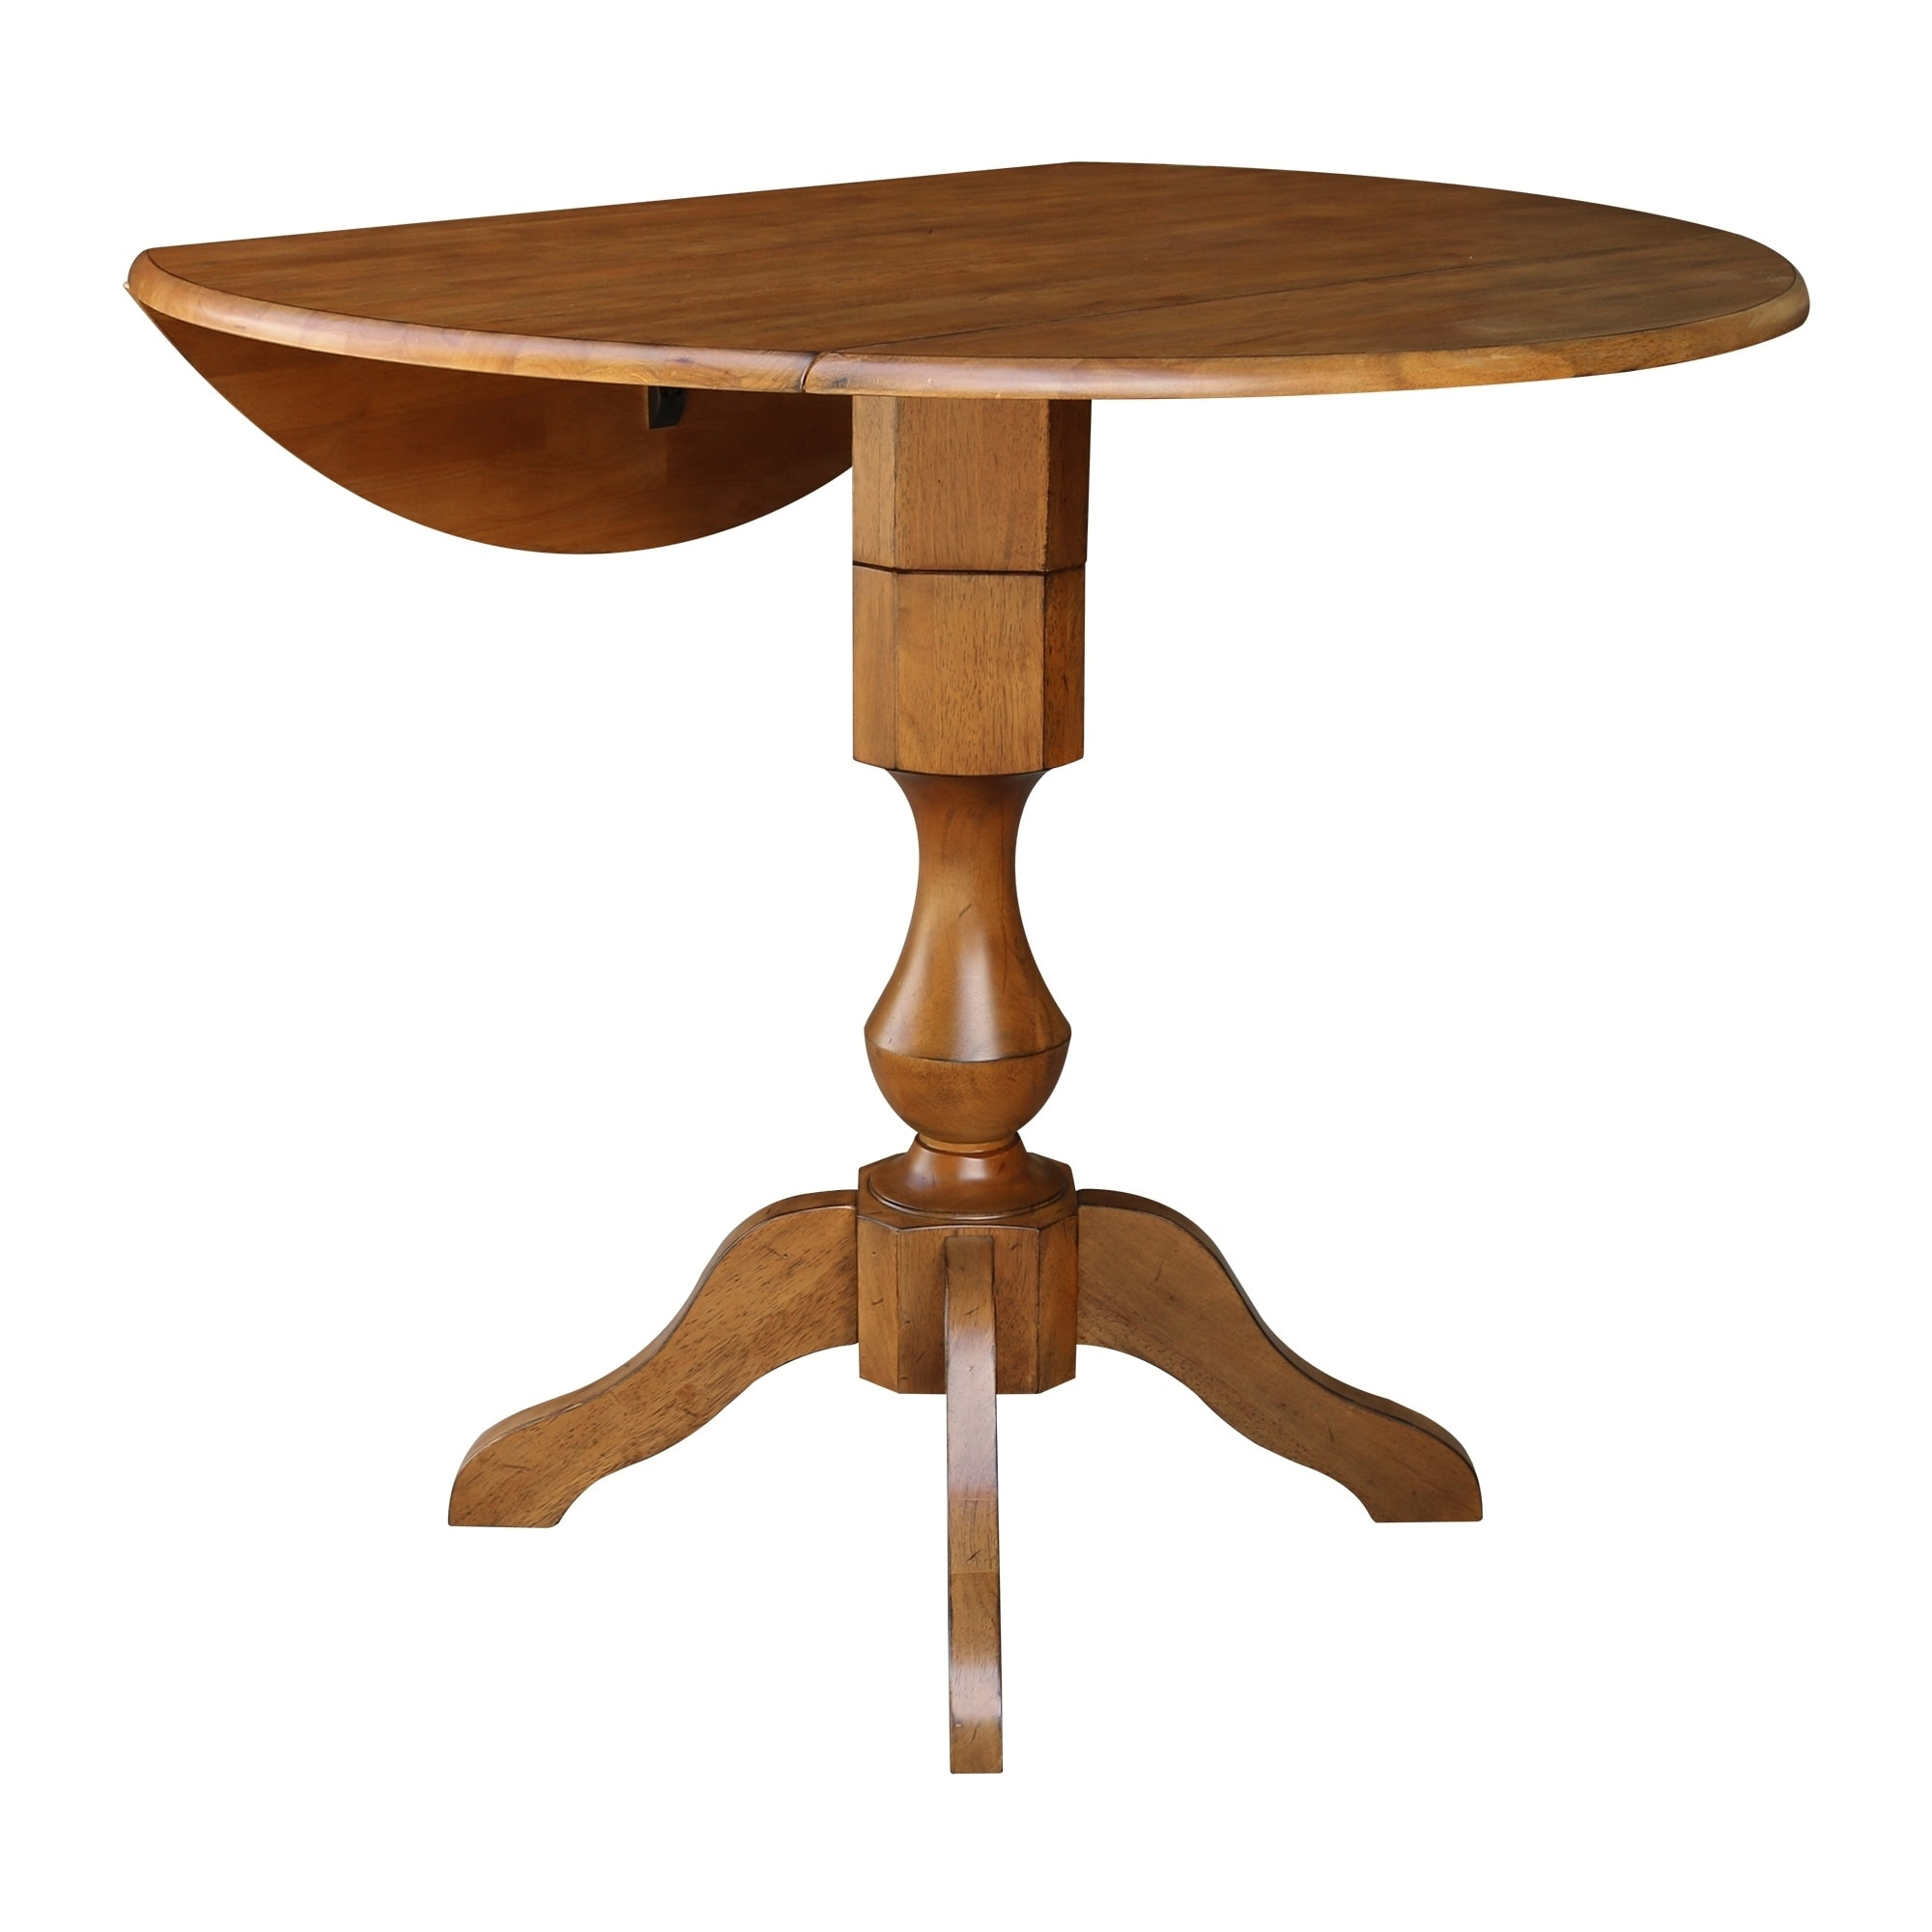 42 Round Dual Drop Leaf Pedestal Table Pecan Overstock 27459825